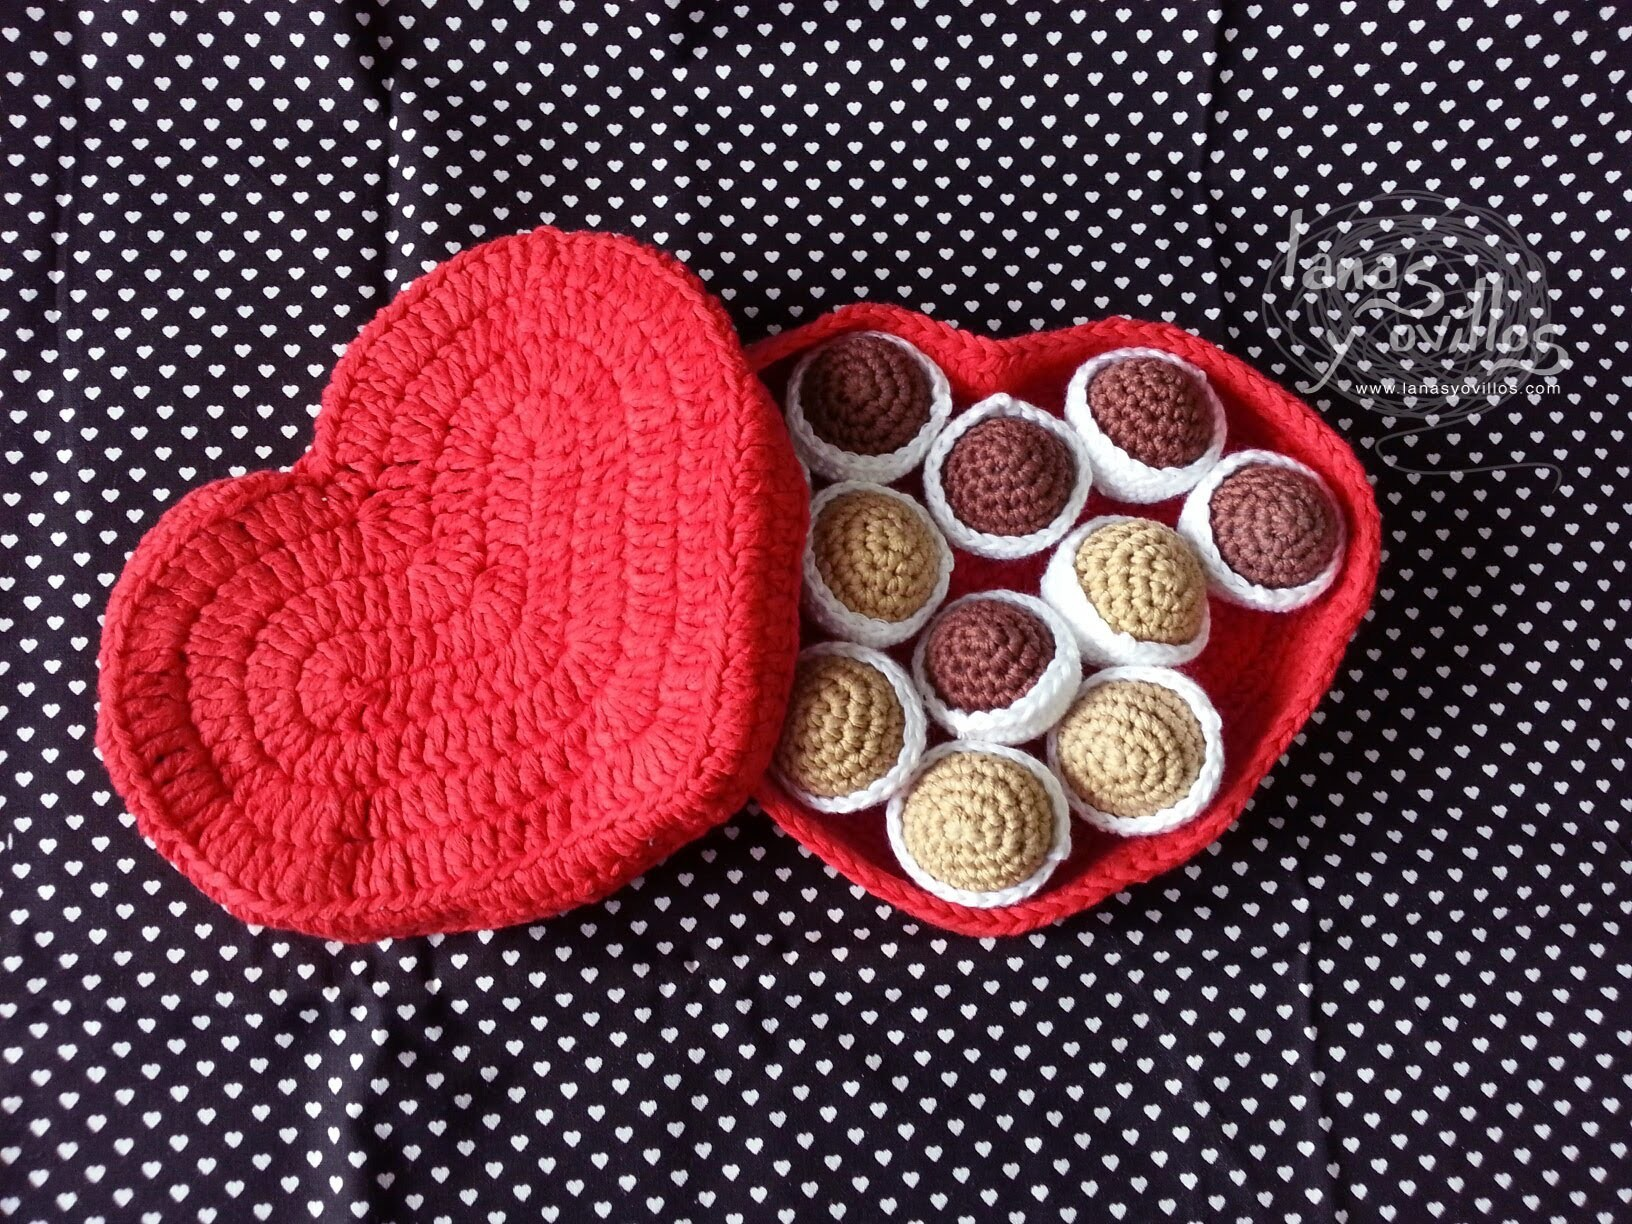 Tutorial Caja Bombones Corazón Crochet Heart Chocolate Box (CHOCOLATES) (English subtitles)